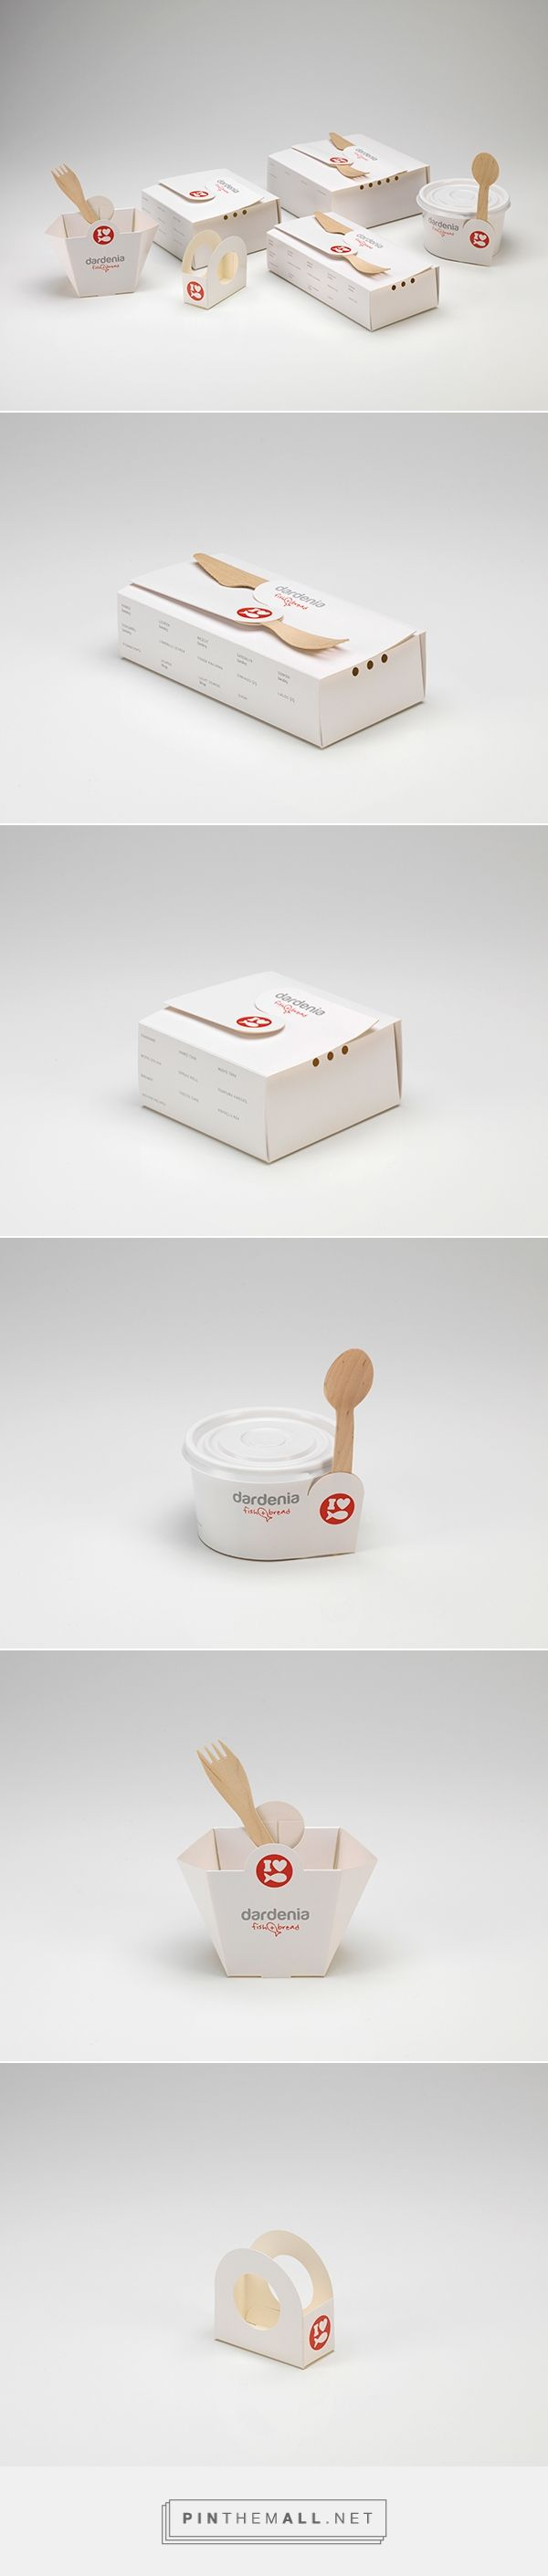 DARDENIA food boxes on Behance by Ypsilon Tasarim curated by Packaging Diva PD. Packaging designed to be foldable to enable a space-saving storage in the restaurant.